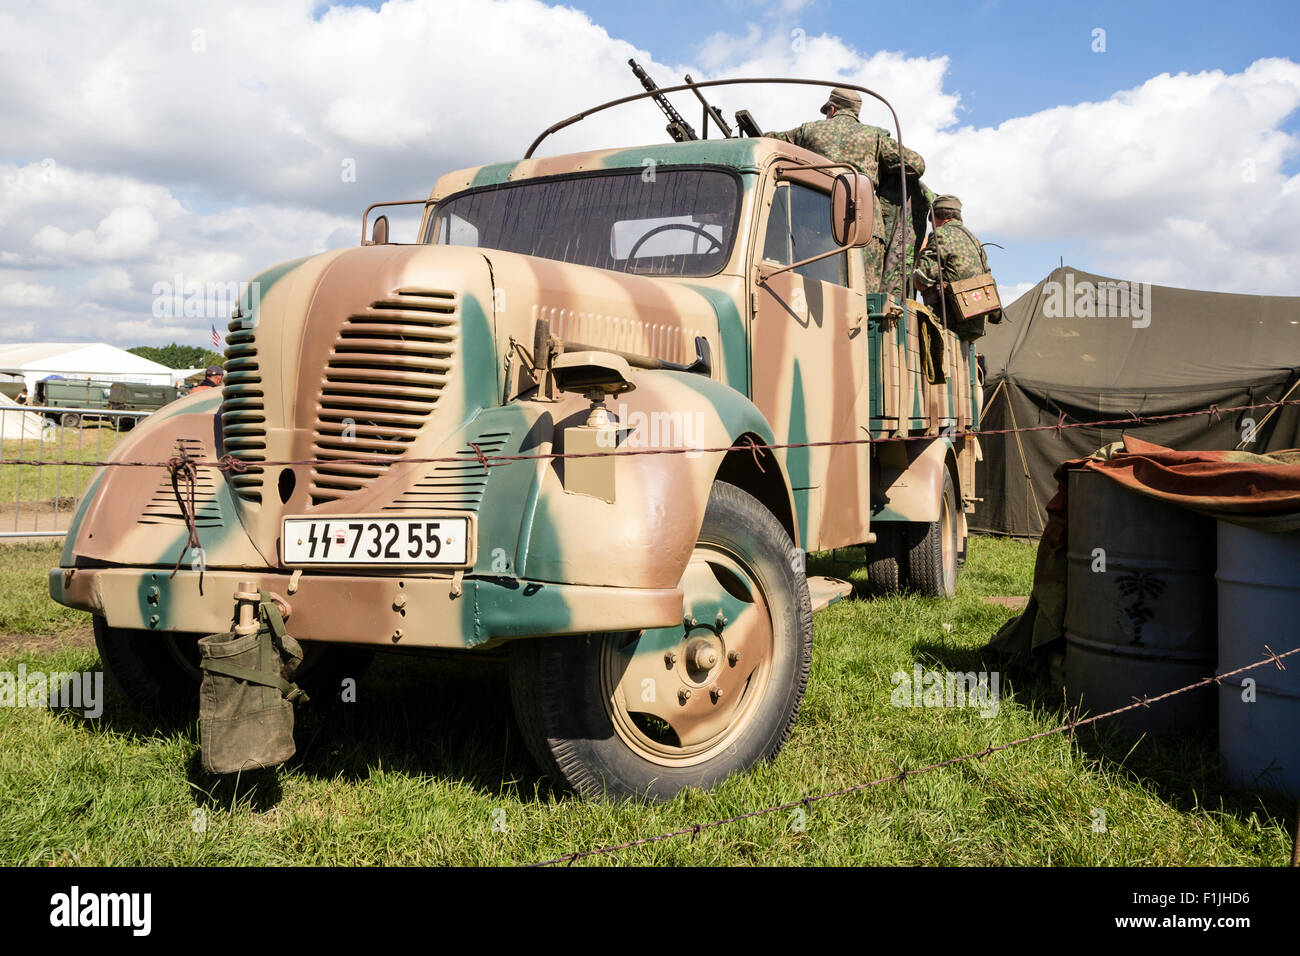 World war two German Army, Wehrmacht, German Truck, facing, brown and green paint pattern. Re-enactment - Stock Image